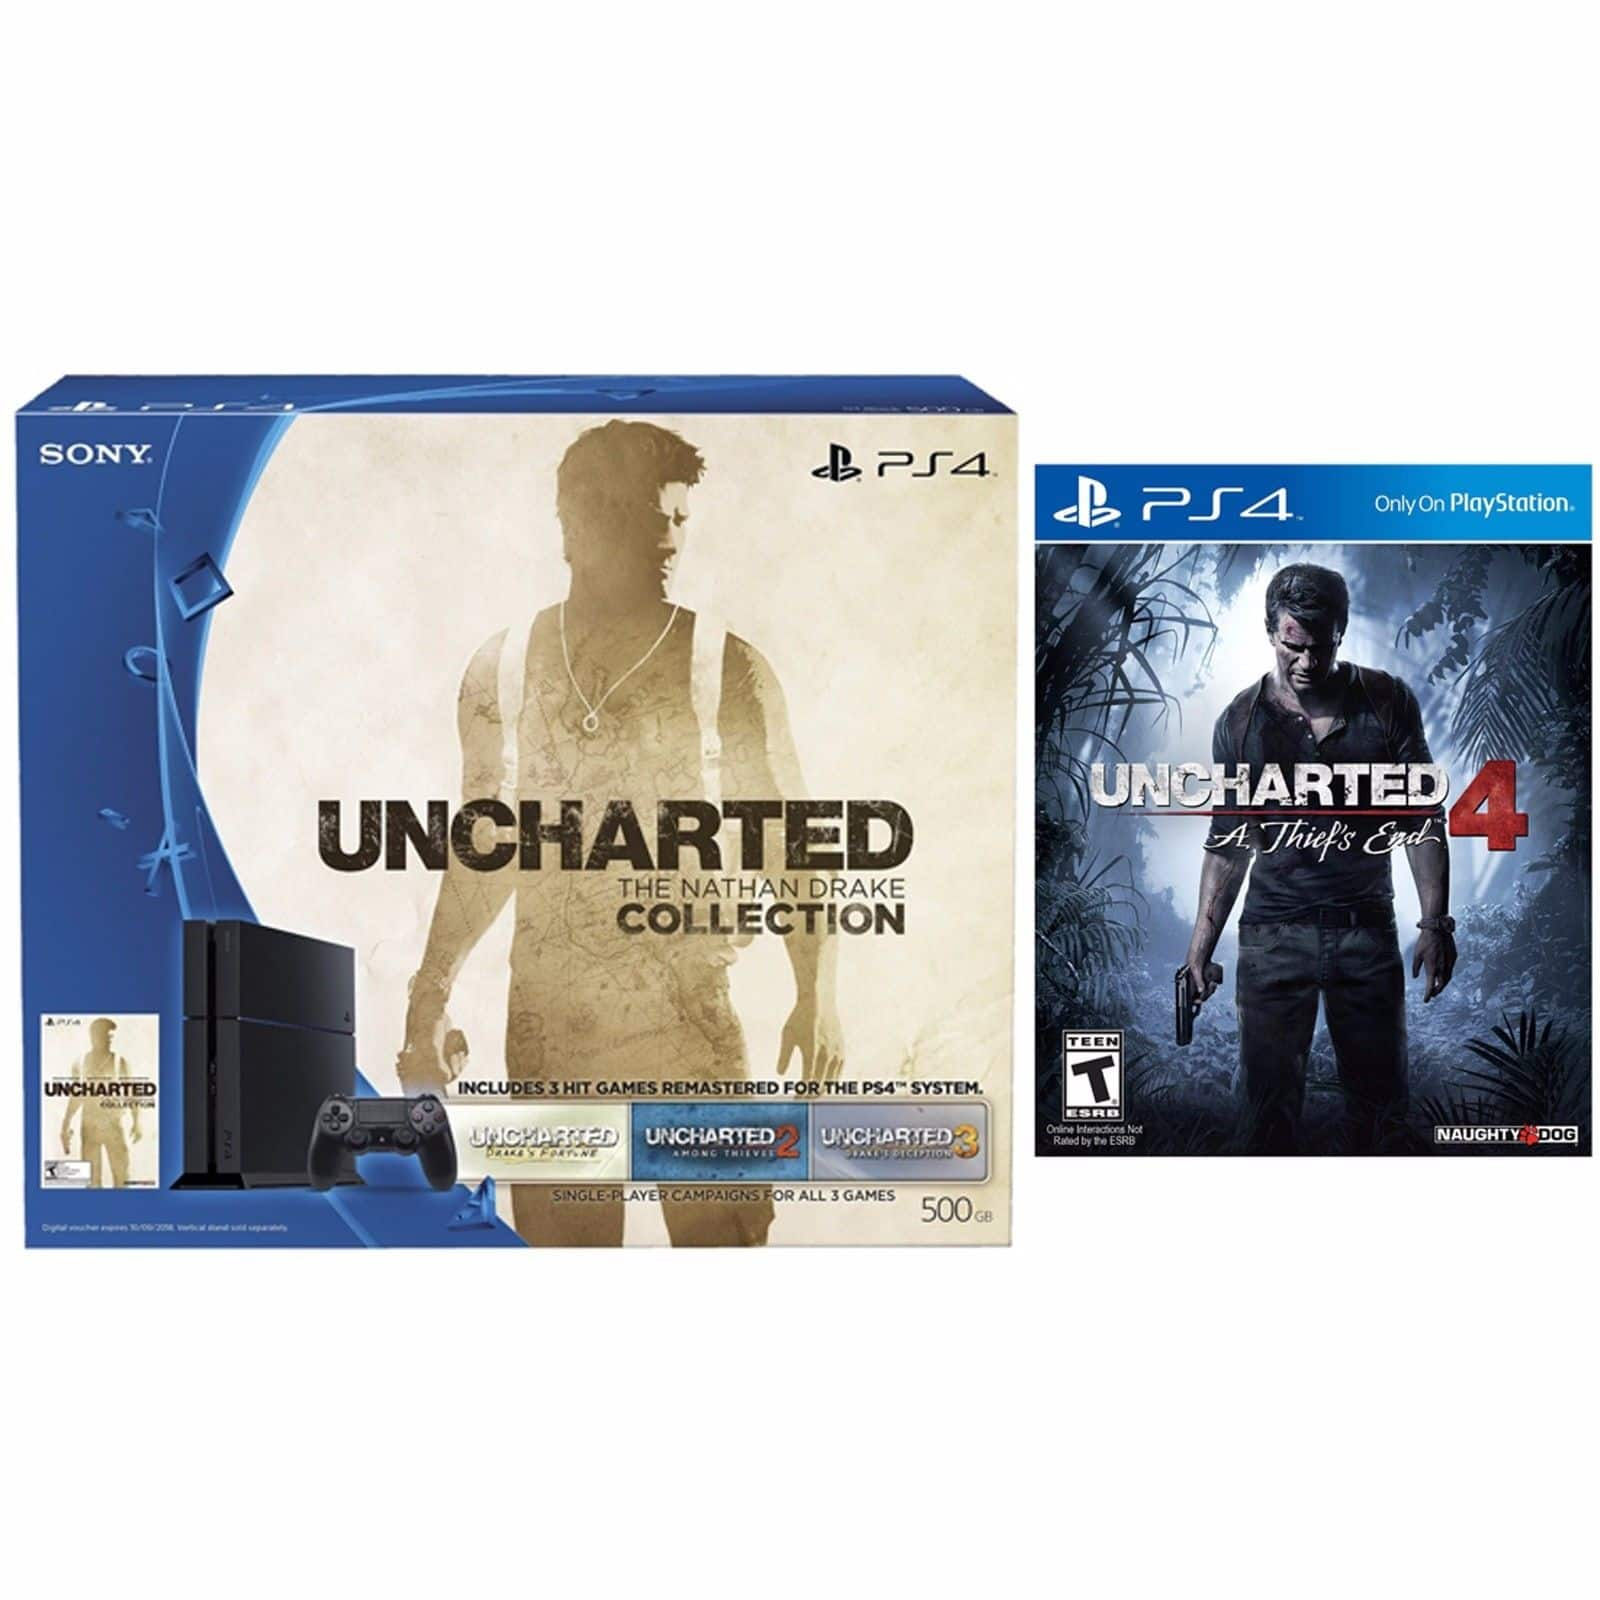 PlayStation 4 Uncharted Nathan Drake 500GB Bundle + Uncharted 4: A Thief's End for $350 + Free Shipping! (eBay Daily Deal)